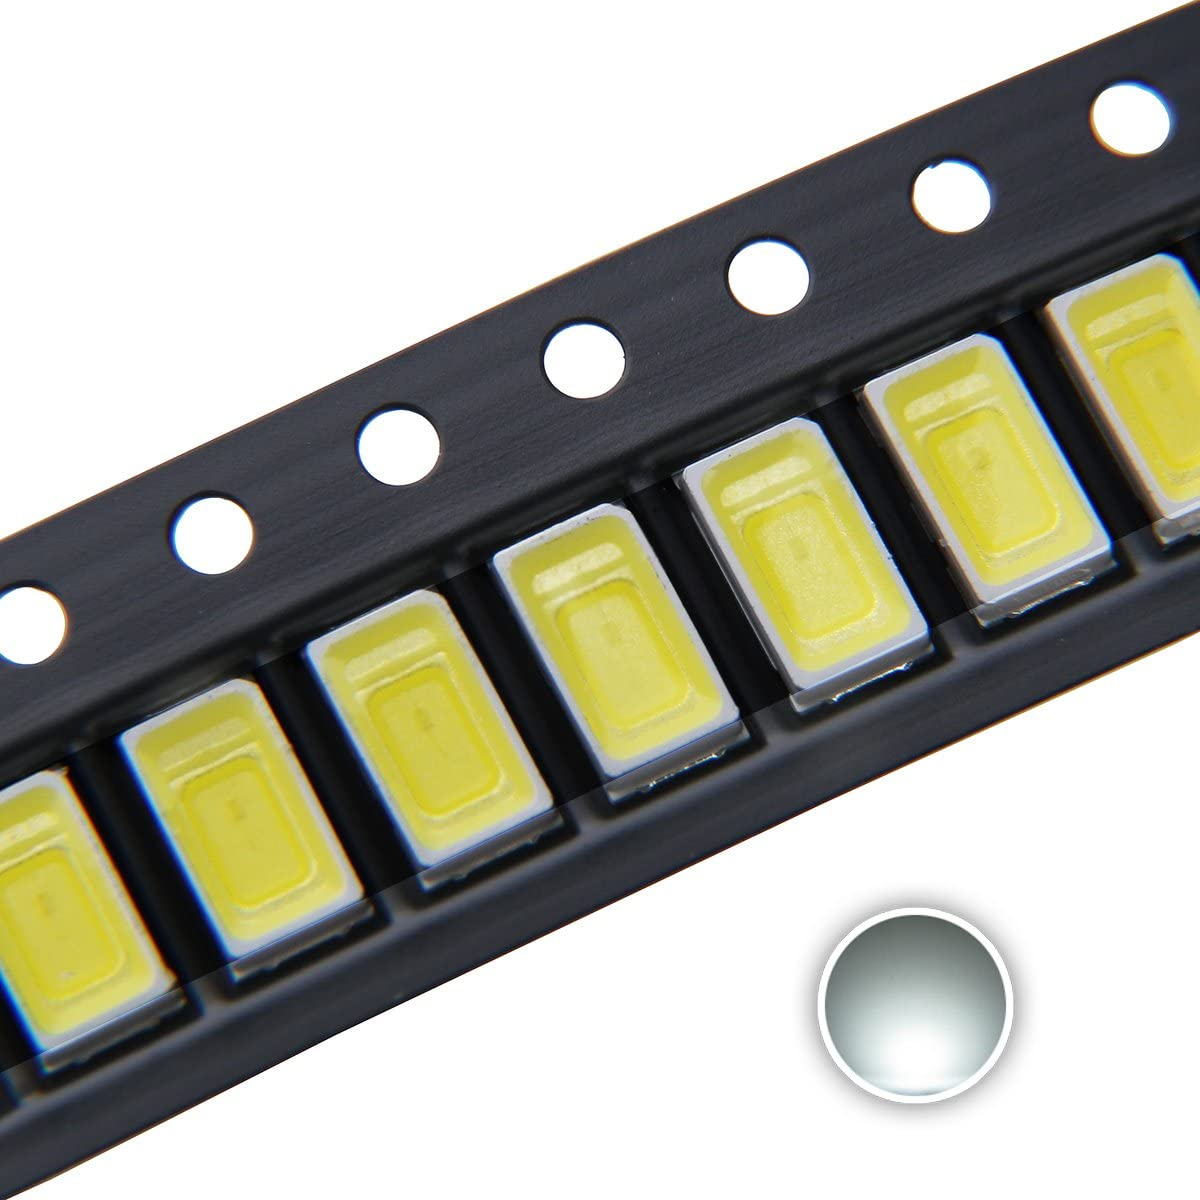 2020 100pcs 5050 SMD LED Diode Lights Yellow Super Bright Lighting Bulb